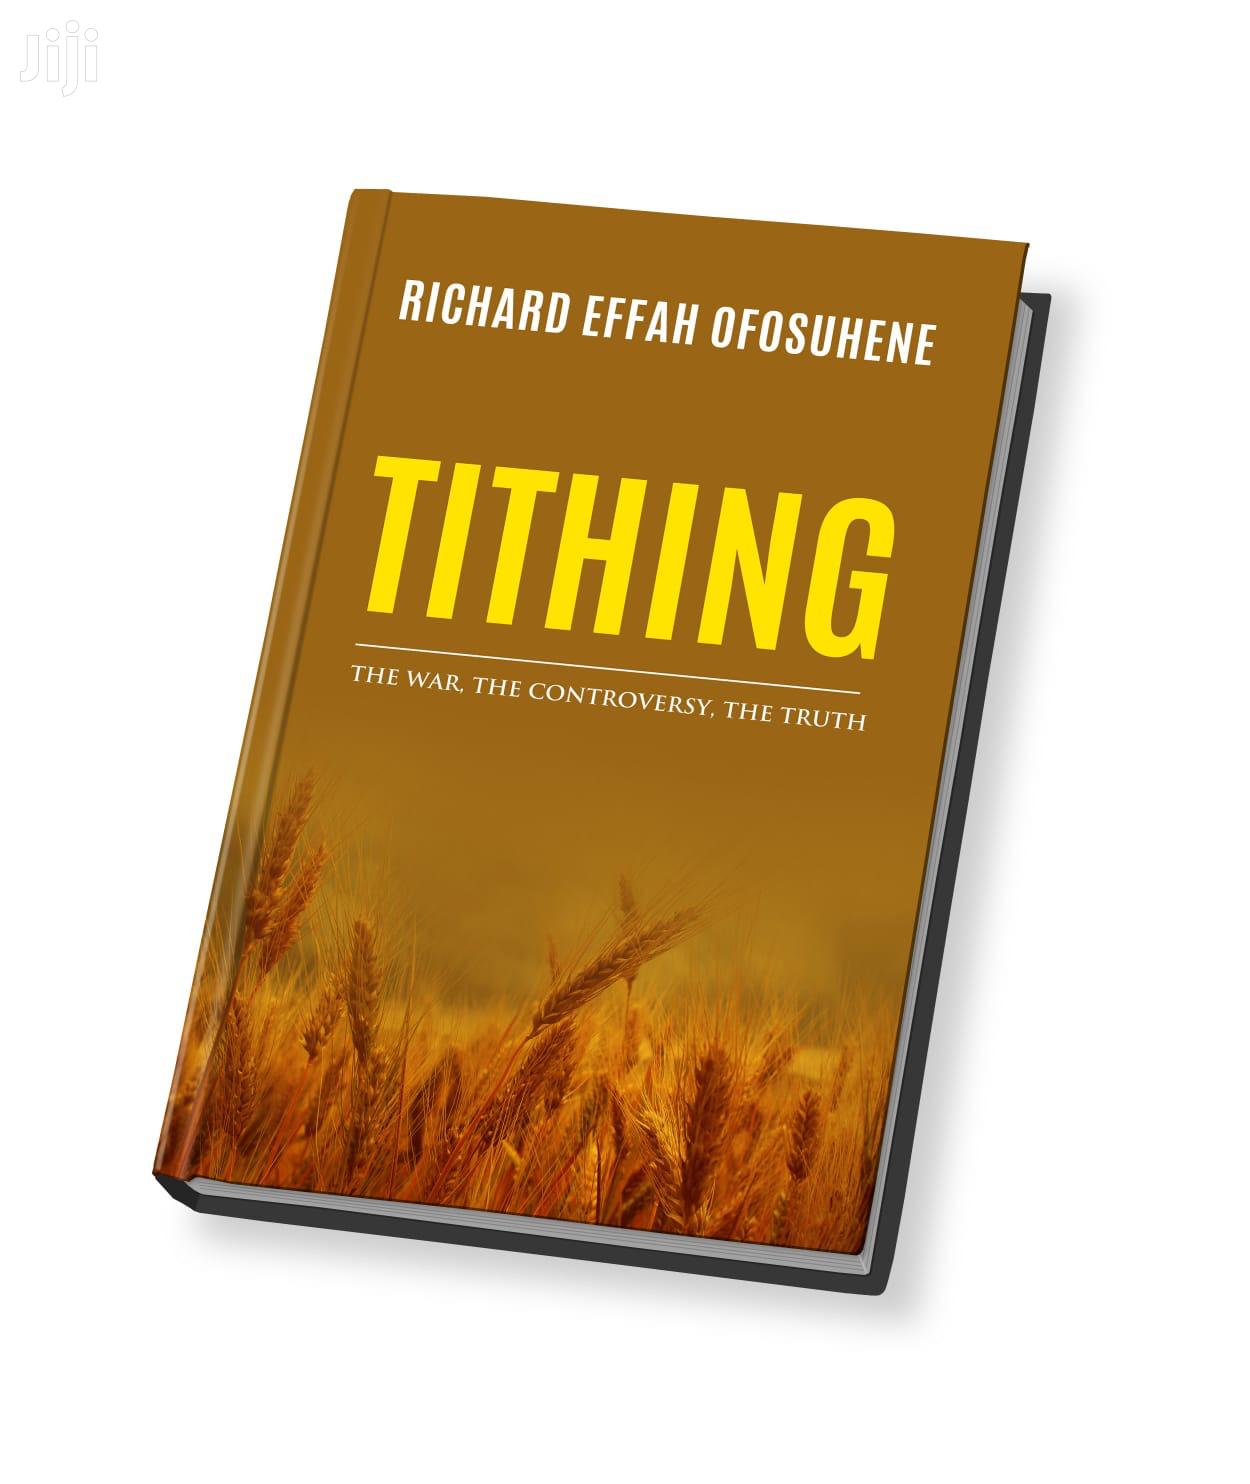 Archive: Bibles, Motivational And Business Books